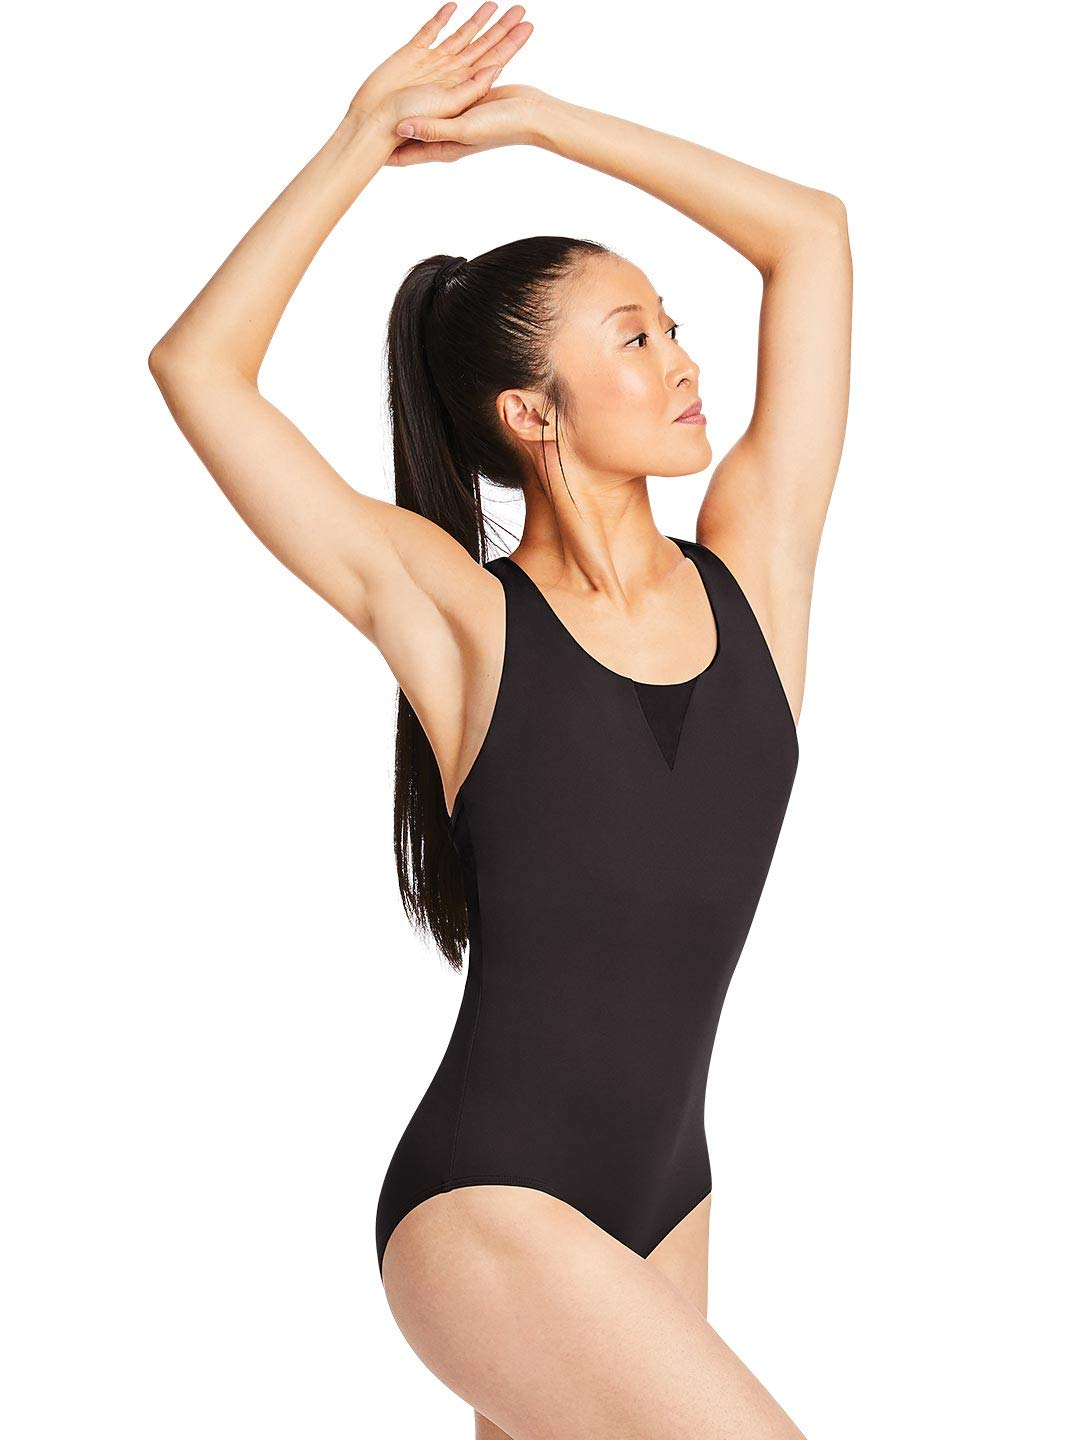 Capezio Tech Strap Back Camisole Leotard - Size Medium, Noir by Capezio